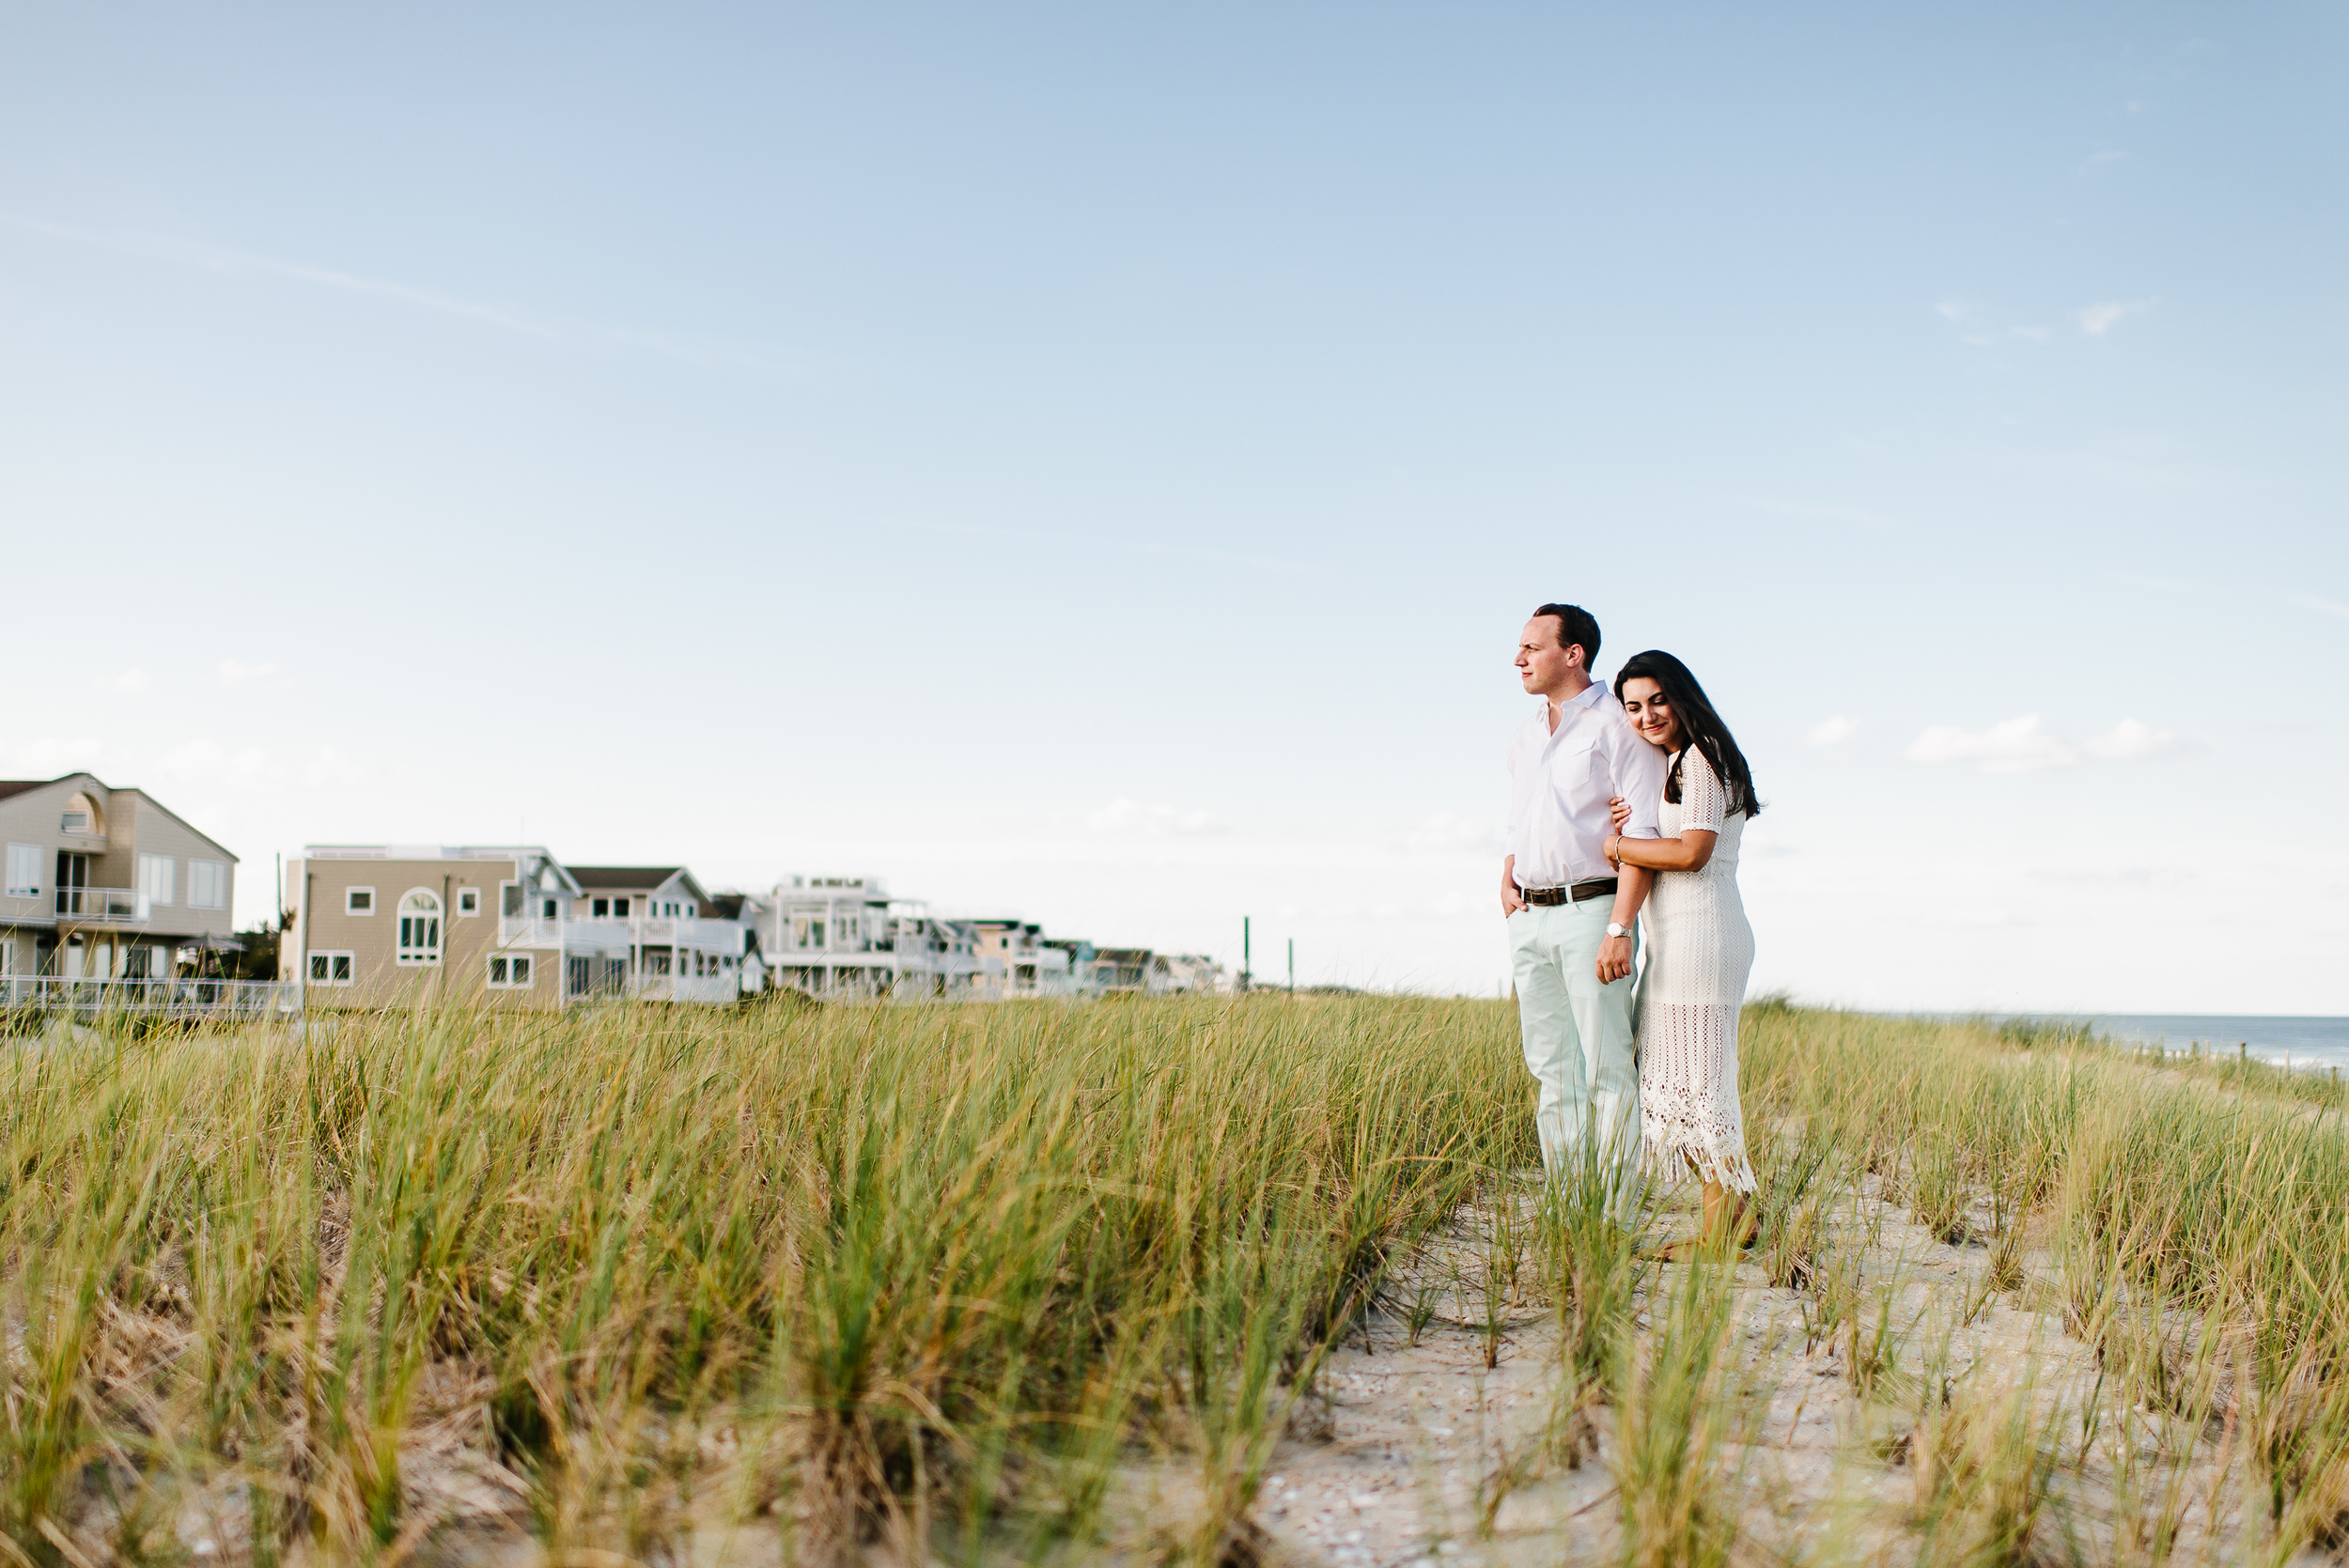 4-Long Beach Island Engagement Photos New Jersey Wedding Photographer Ship Bottom Beach Engagement Photos Longbrook Photography.JPG